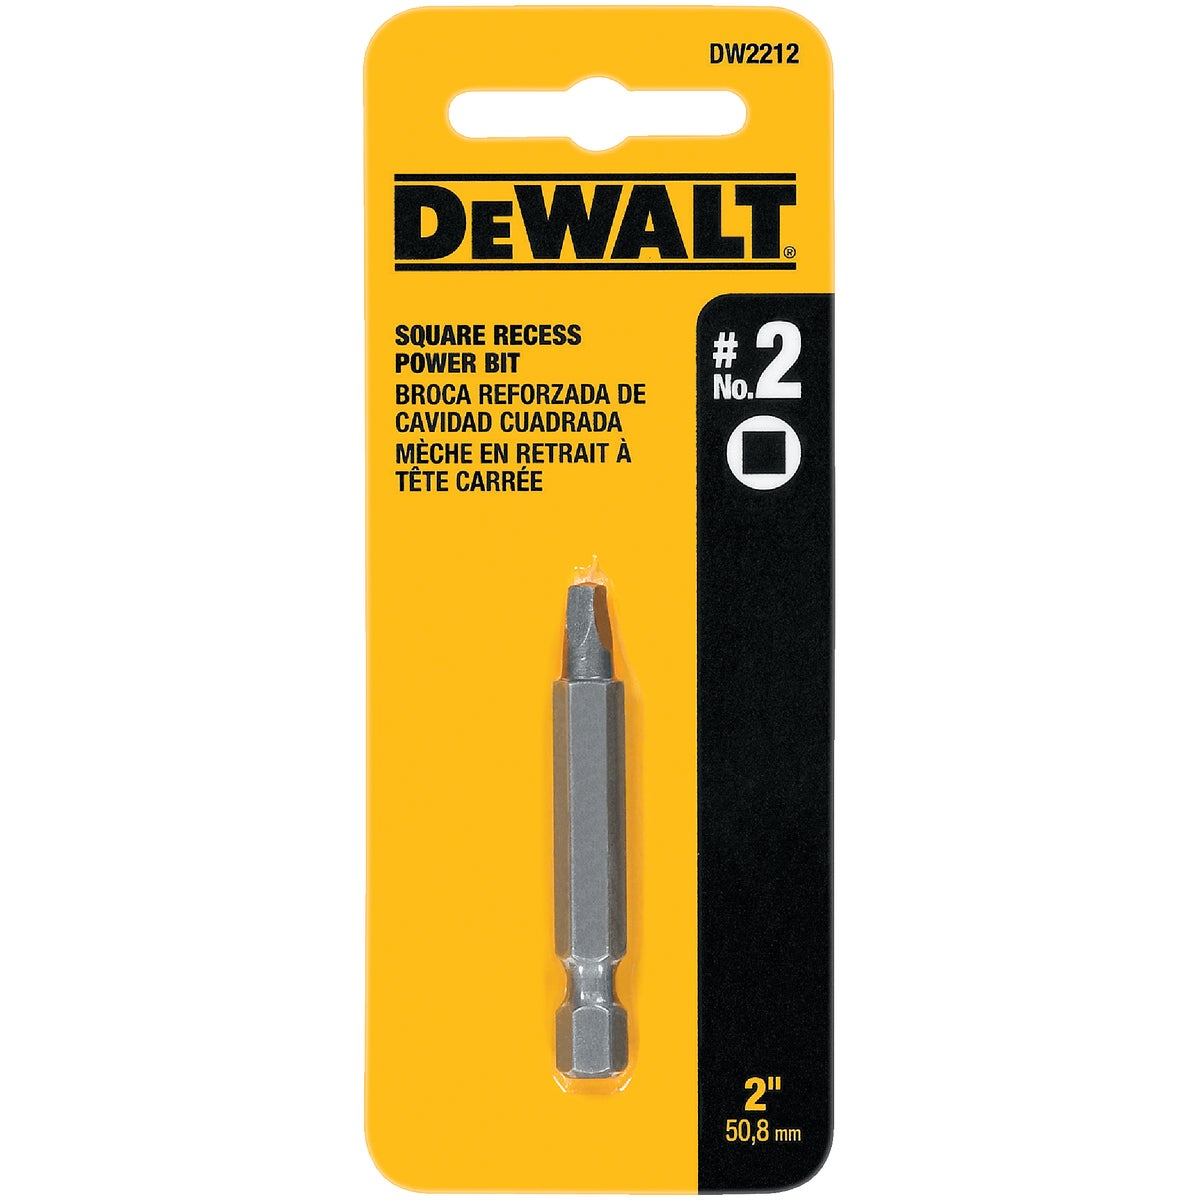 "#2 2"" SQUARE RECESS BIT - DW2212 by DeWalt"